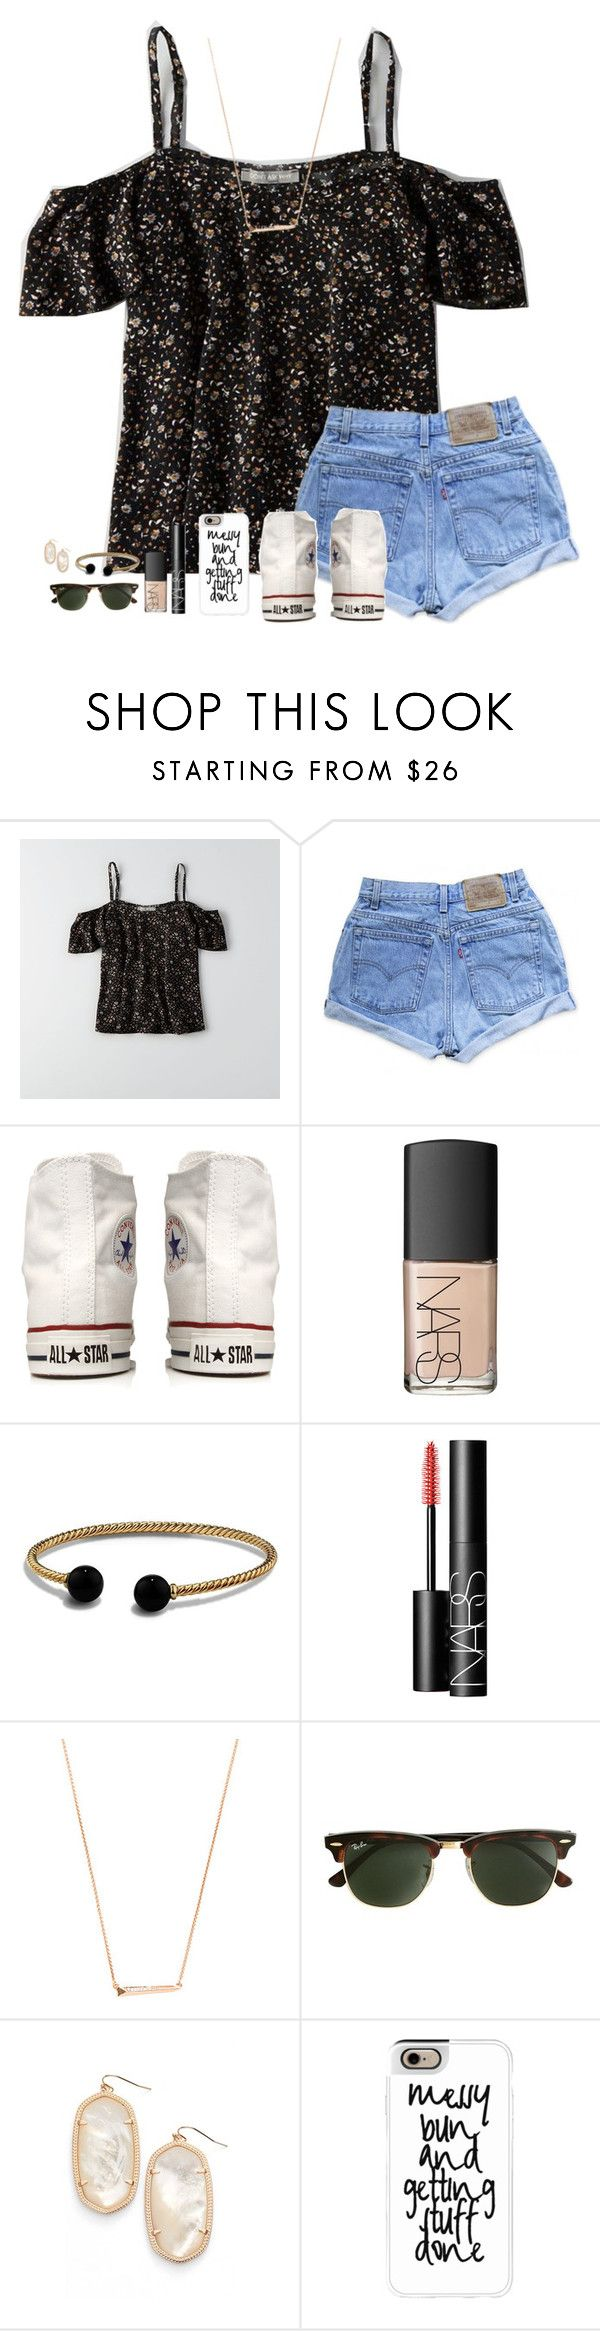 """GUY TROUBLE RTD!!!"" by lindsaygreys ❤ liked on Polyvore featuring American Eagle Outfitters, Levi's, Converse, NARS Cosmetics, David Yurman, Kendra Scott, J.Crew and Casetify"